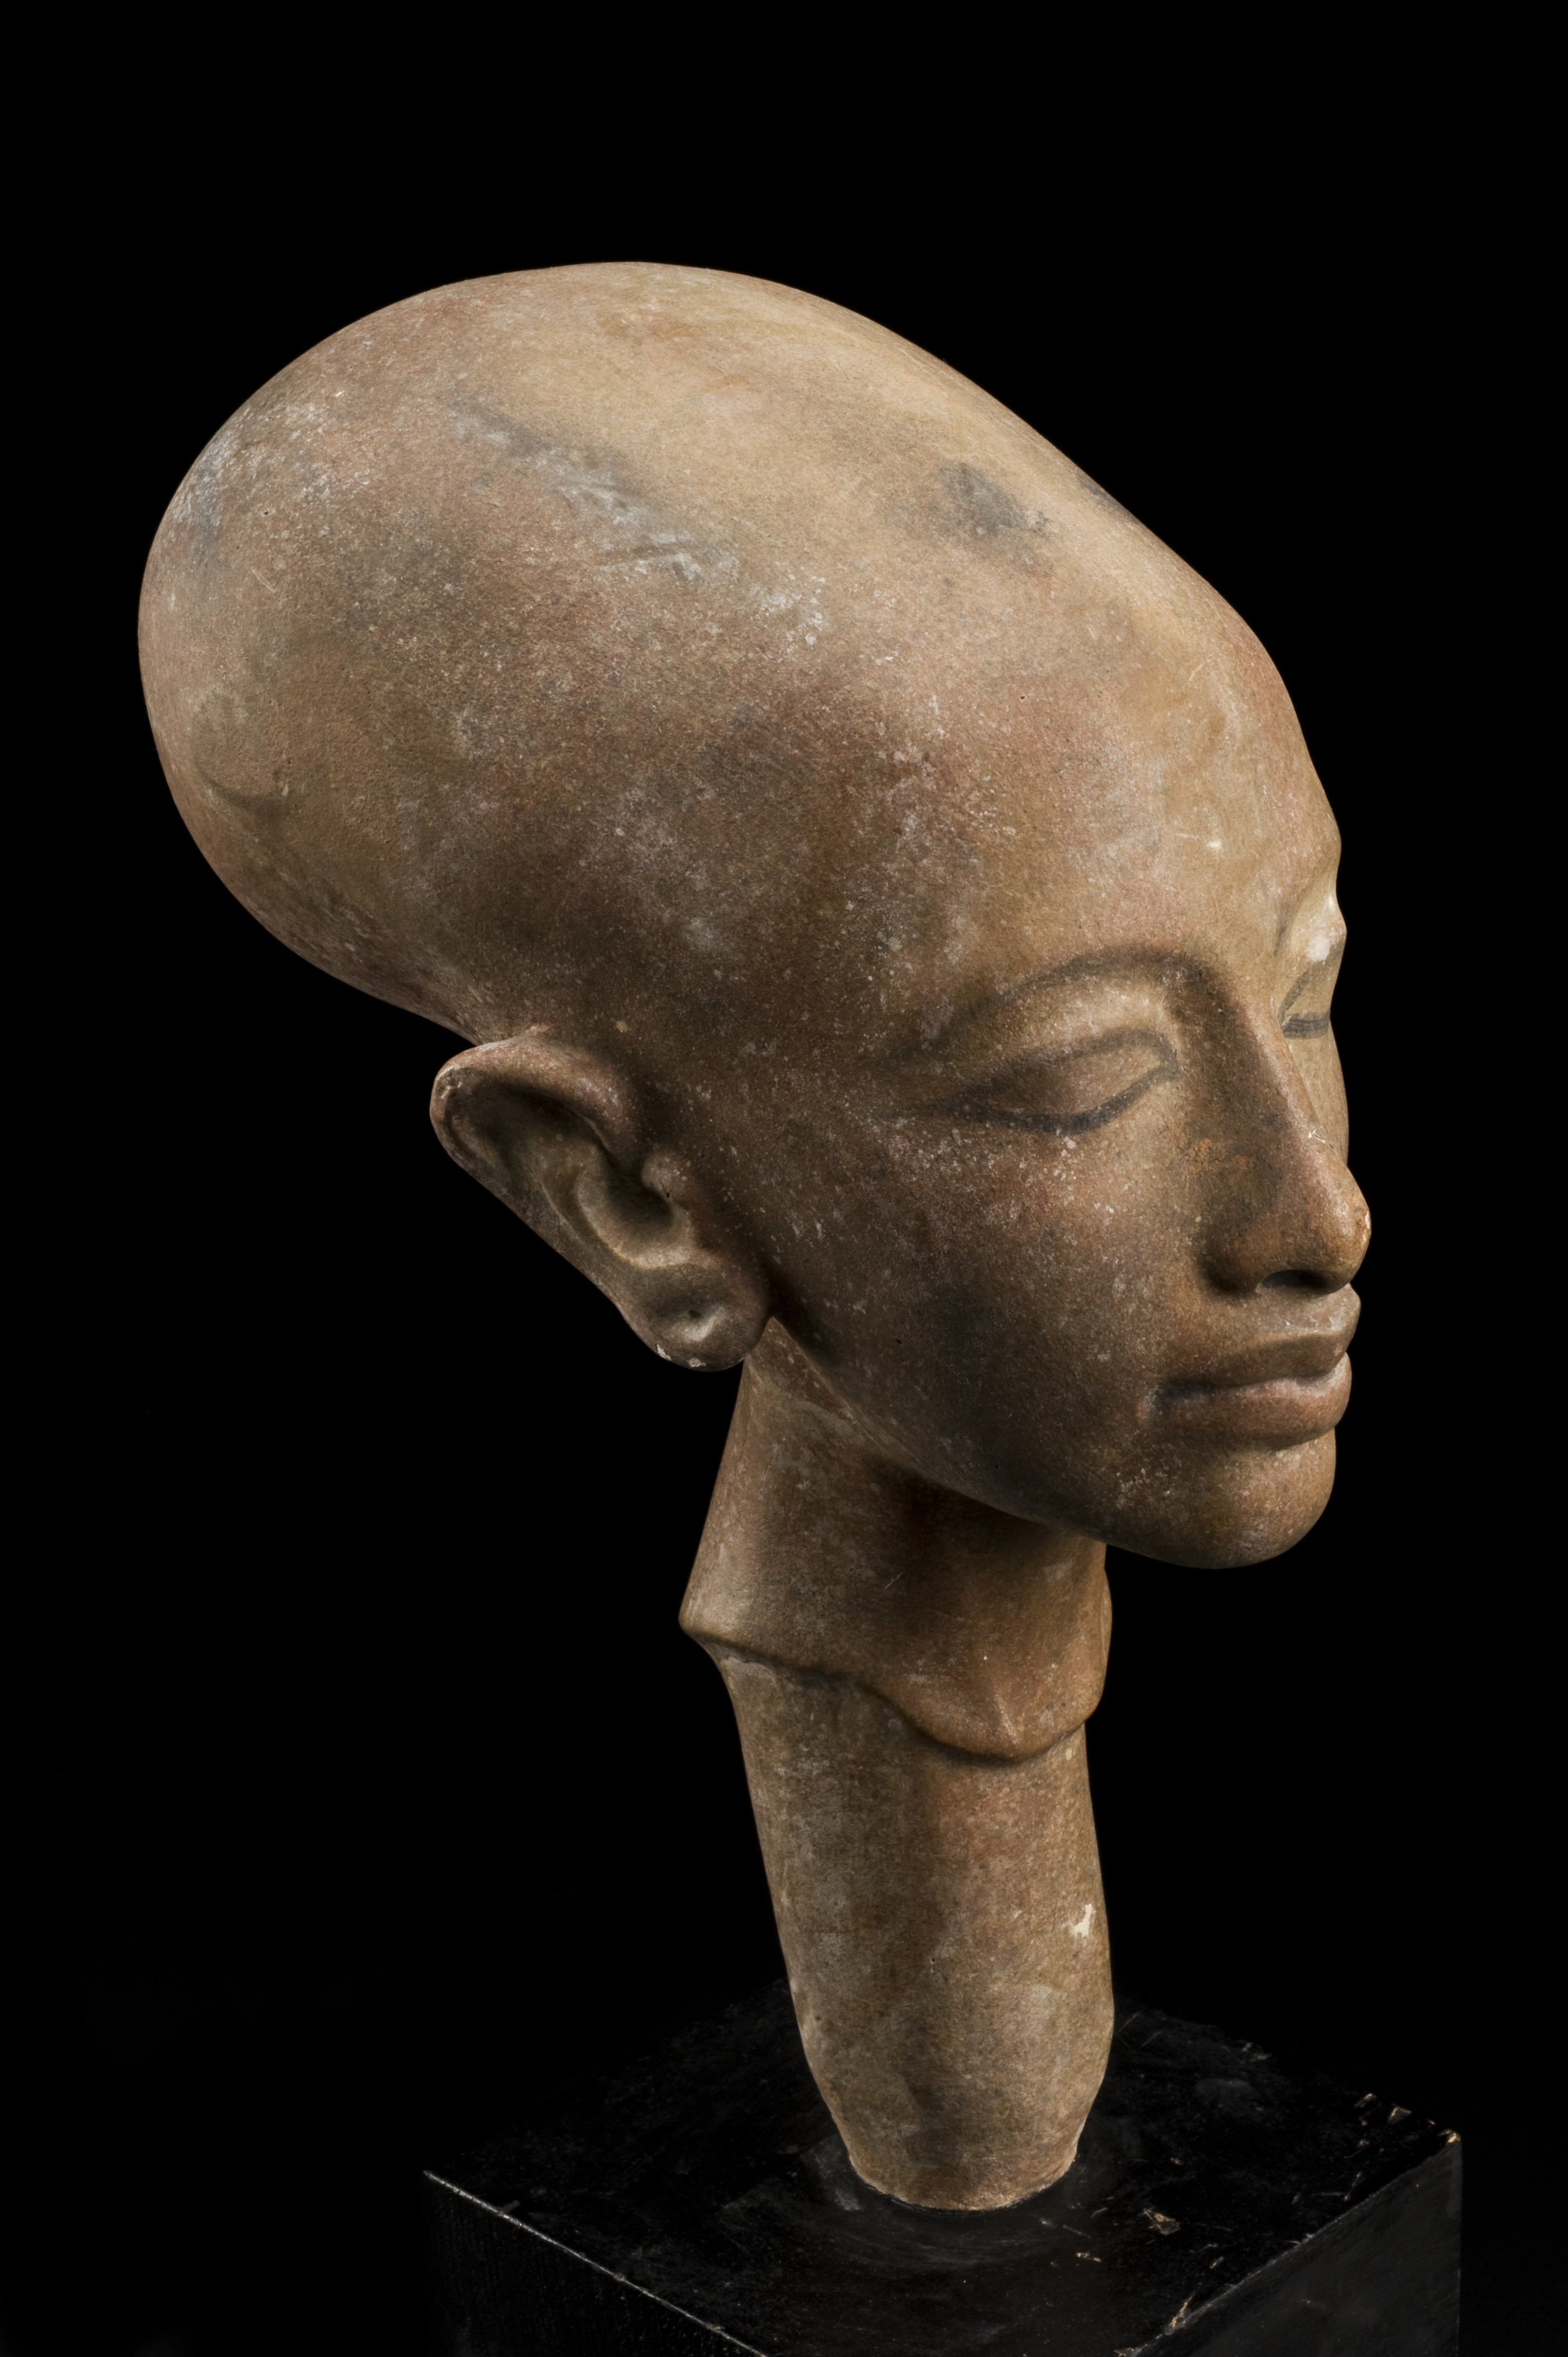 Ghost Hunting Theories What Did King Tut Really Look Like